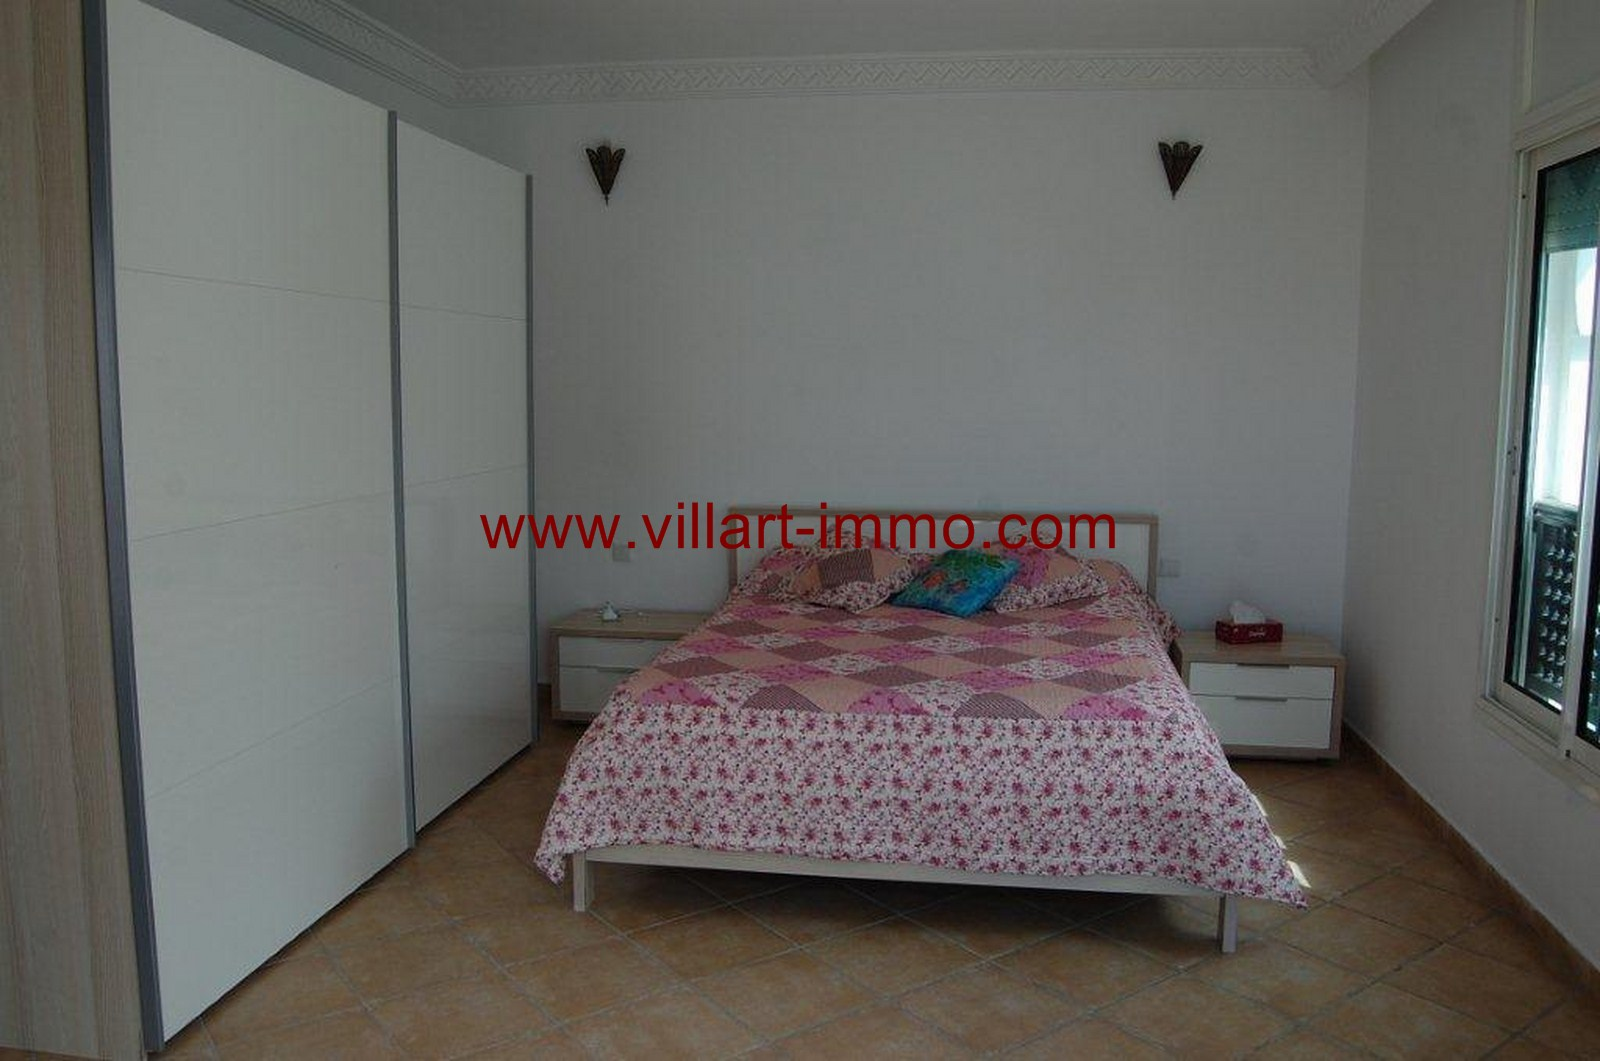 5-For-Sale-Villa-Tangier-Malabata-Bedroom 1-VV354-Villart Immo